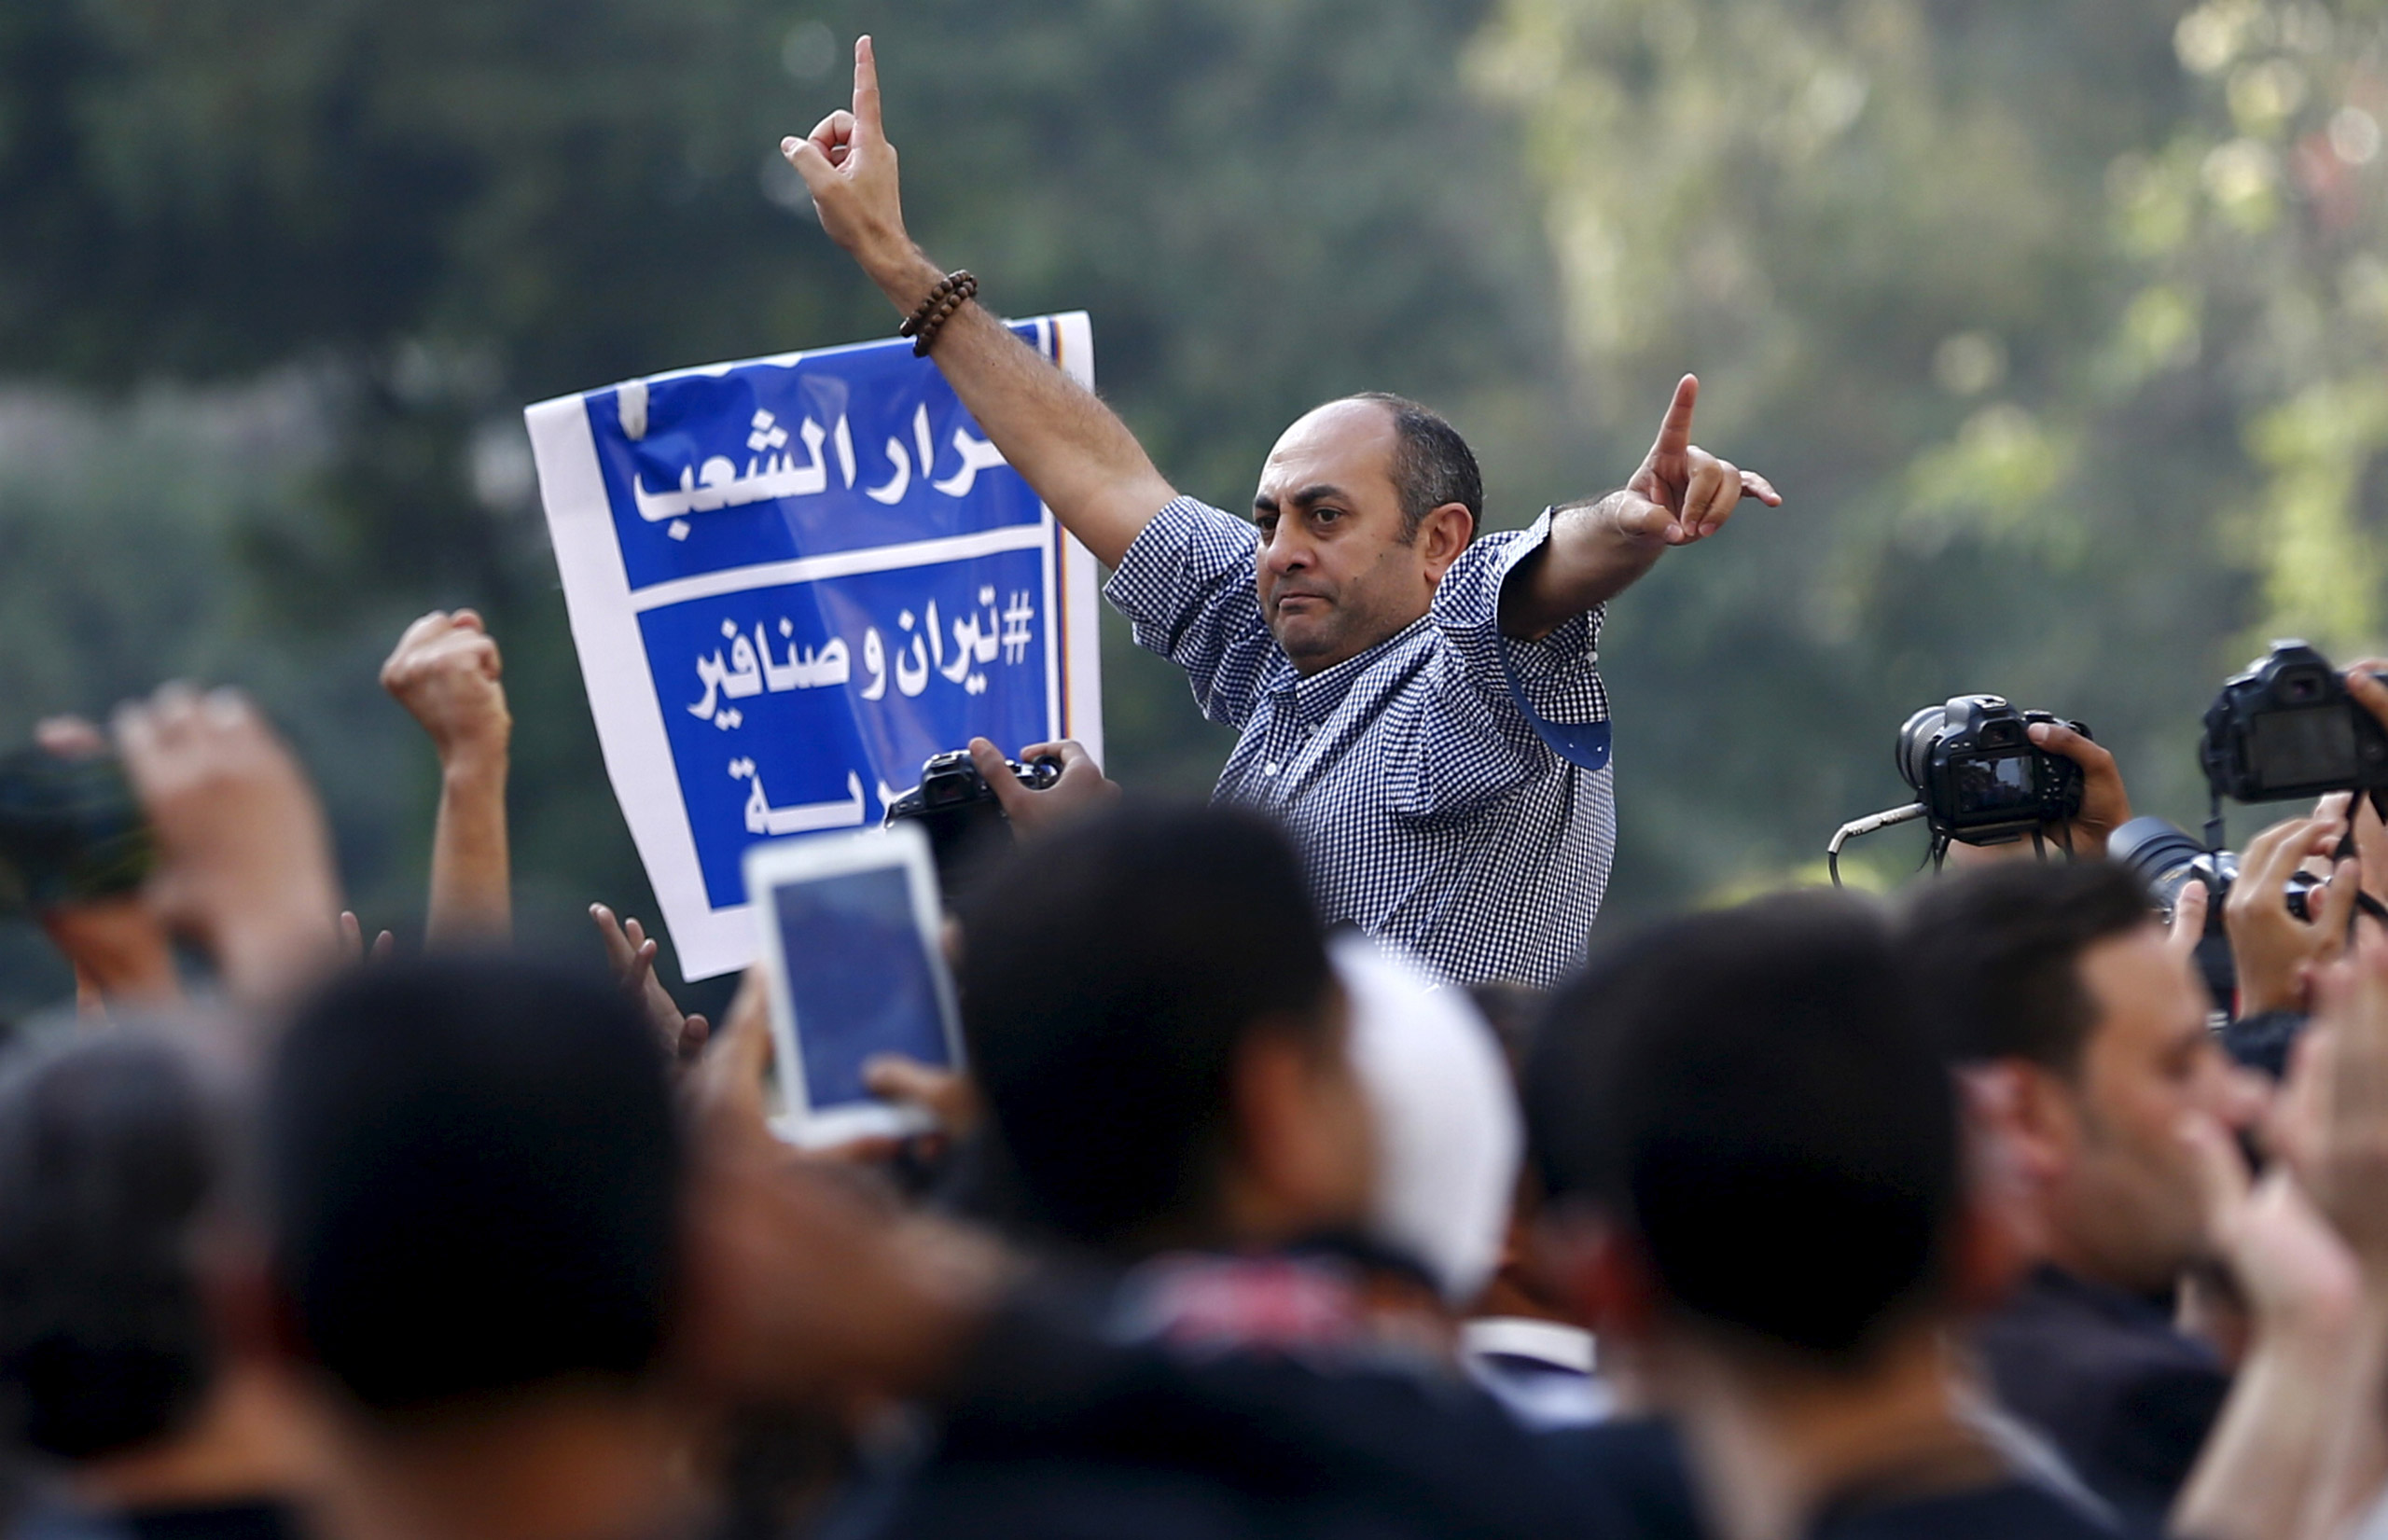 A former presidential candidate and lawyer Khaled Ali shouts slogans against President Abdel Fattah al-Sisi and the government during a demonstration in Cairo on April 15, 2016.